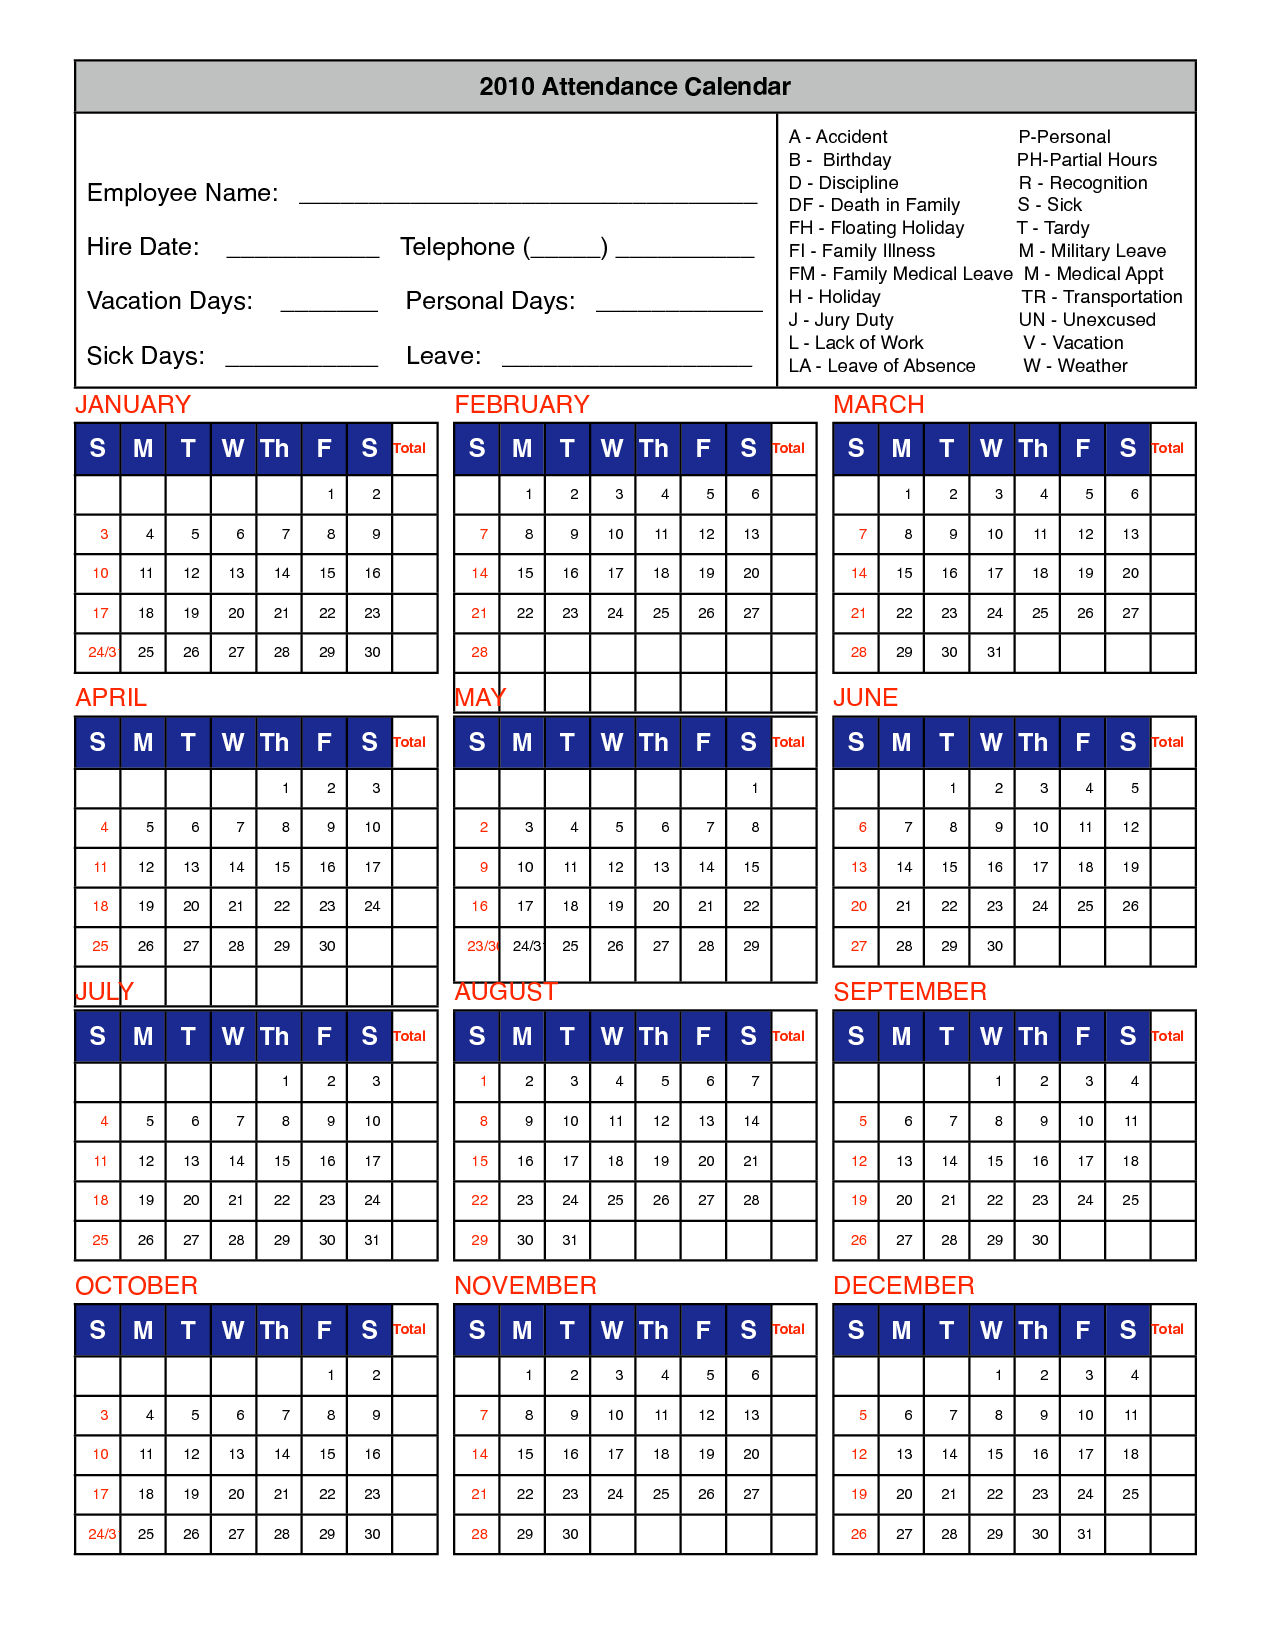 Take 2020 Attendance Calendar To Print For Free